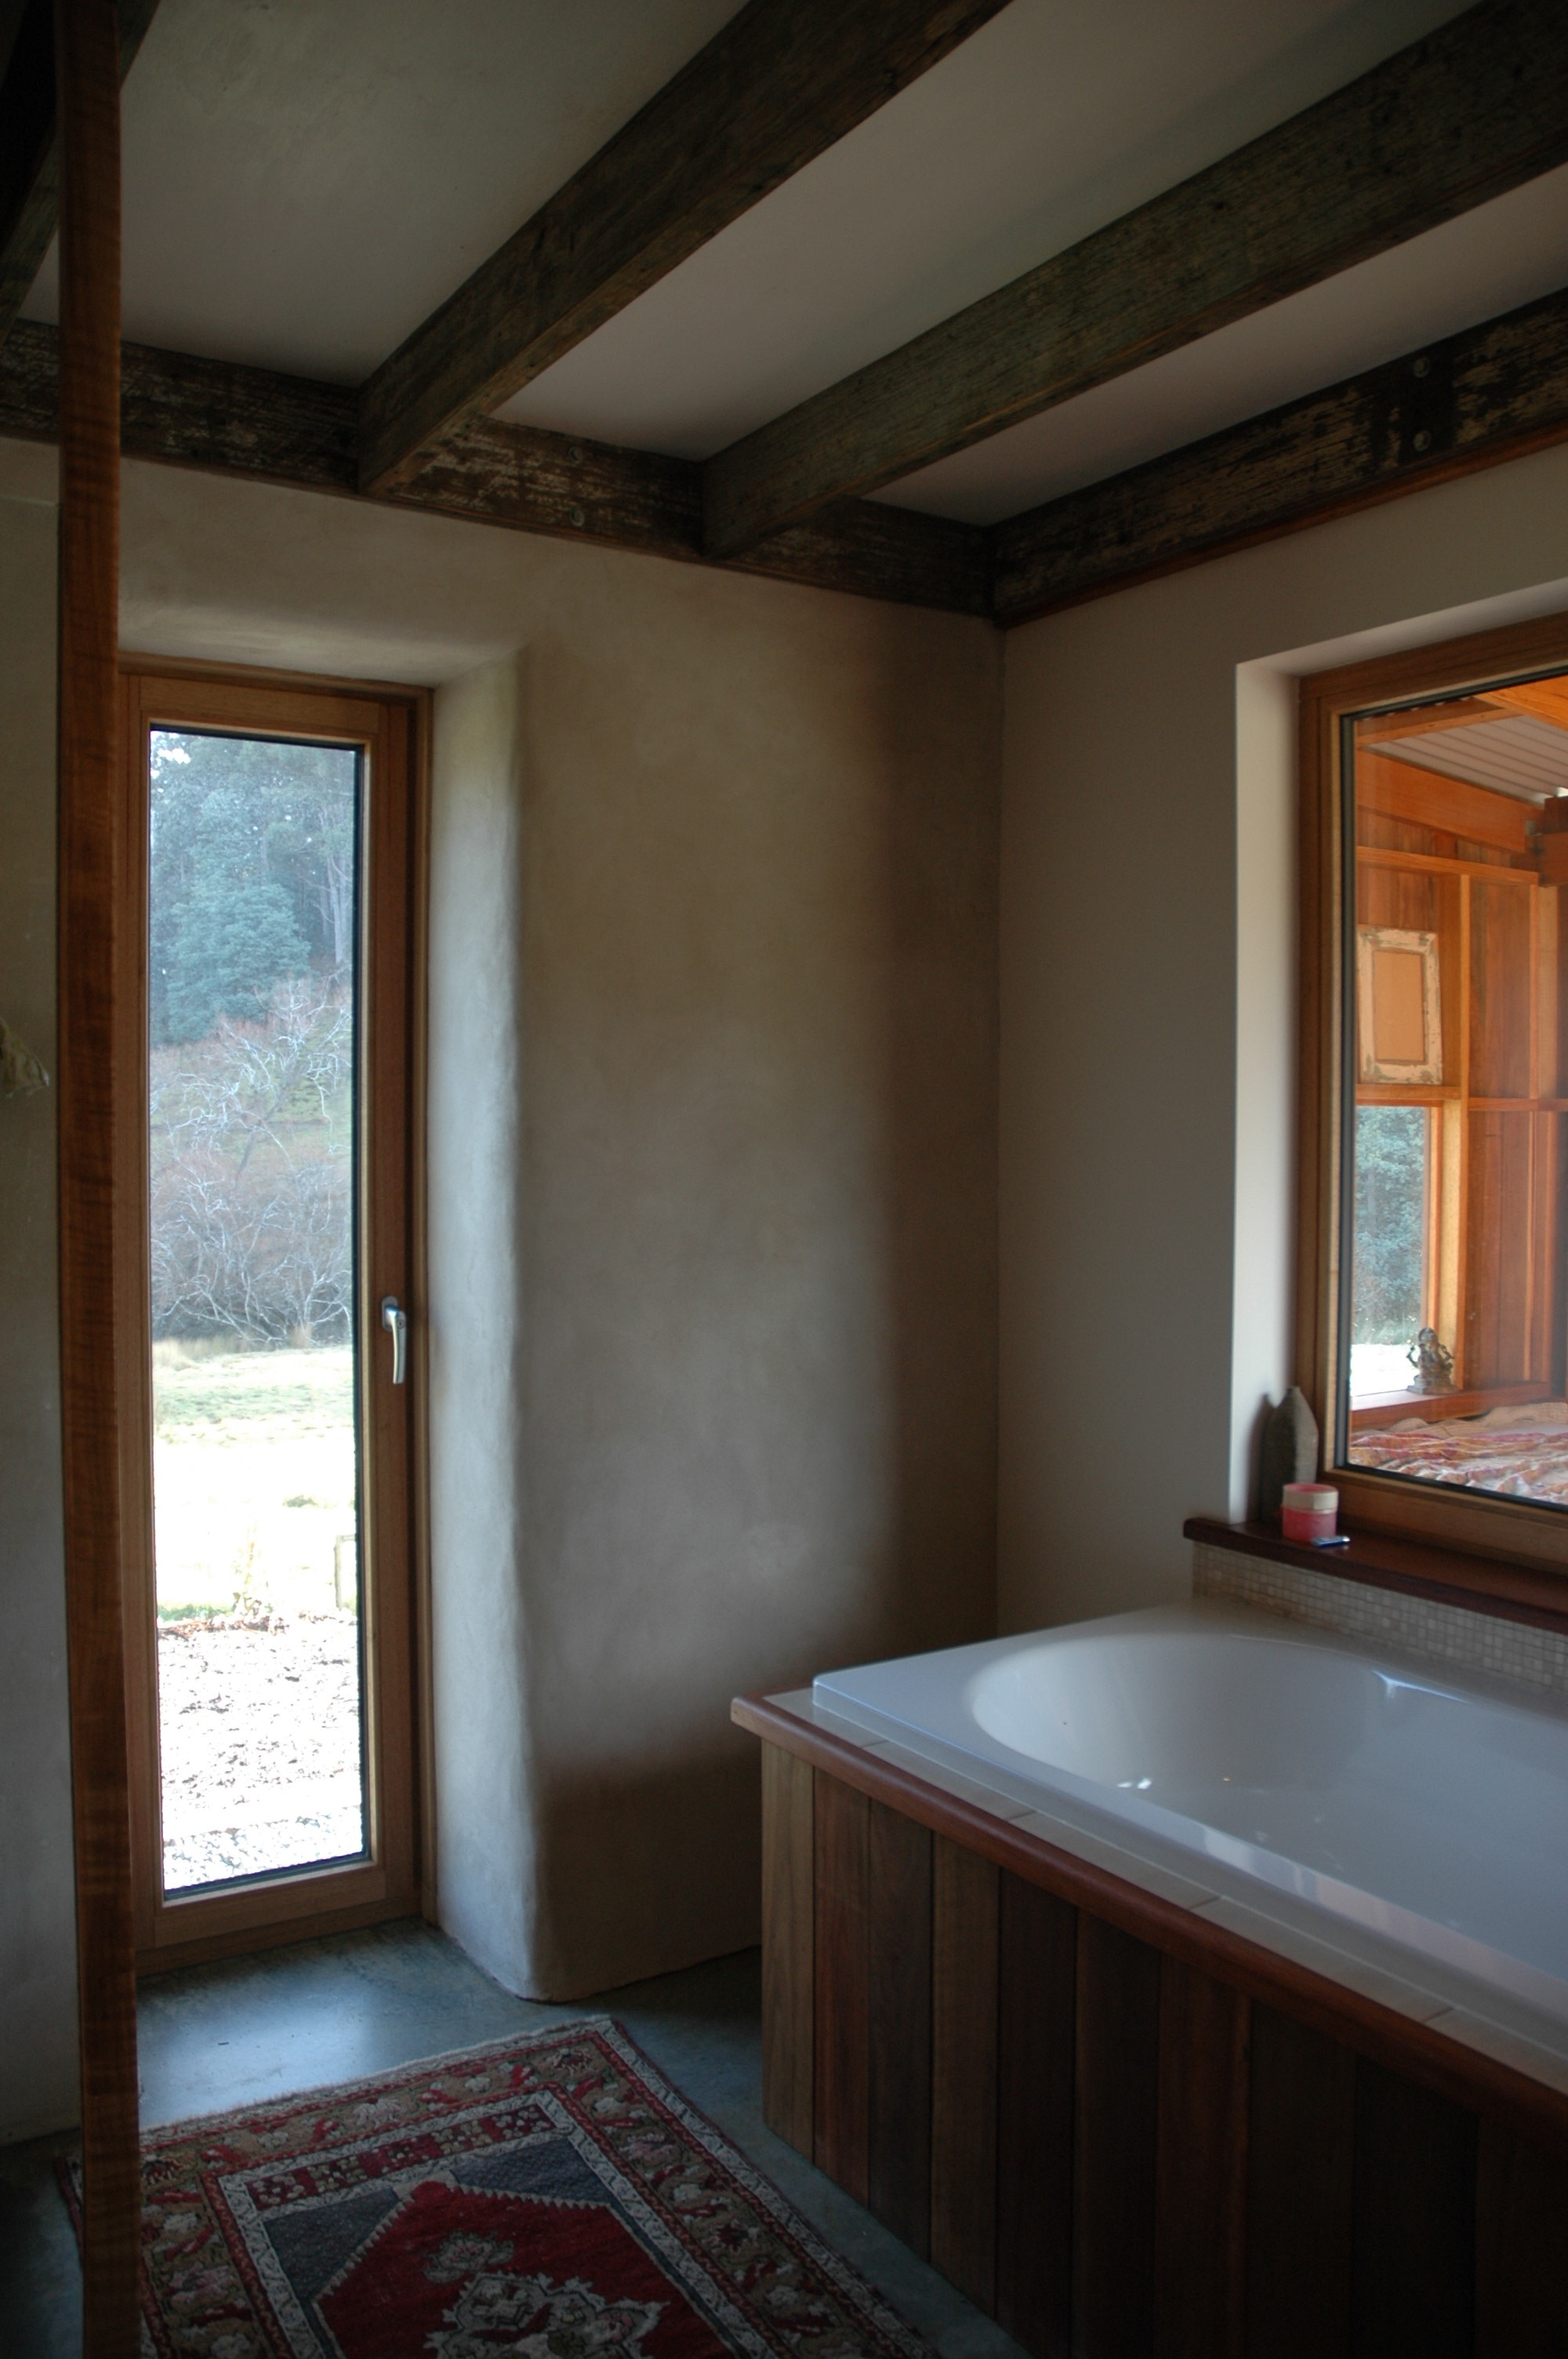 Integral Engineers Projects - Strawbale Home - Image 6.jpg